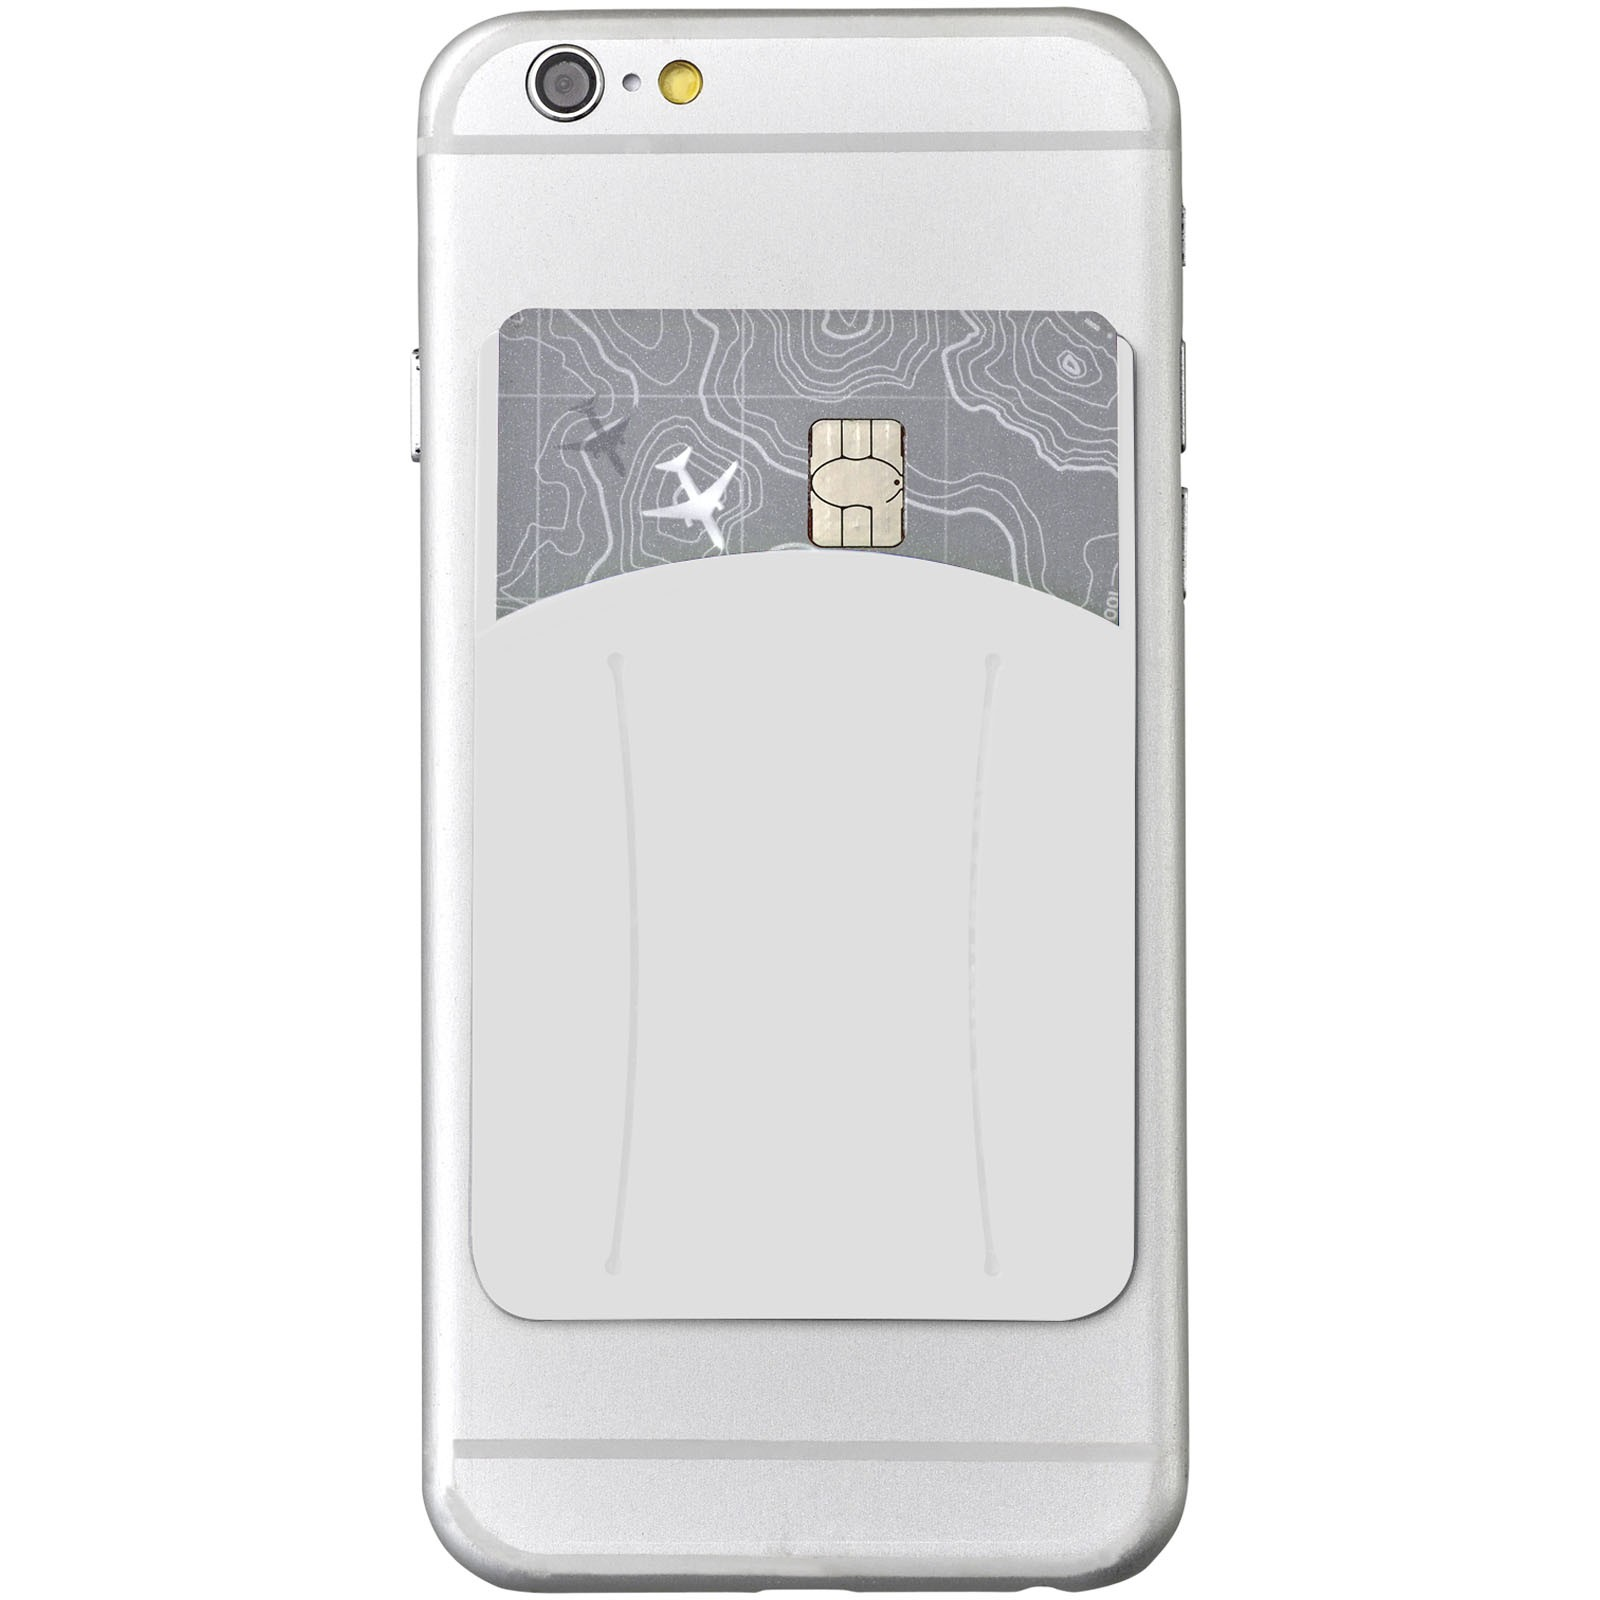 Storee silicone smartphone wallet with finger slot - White